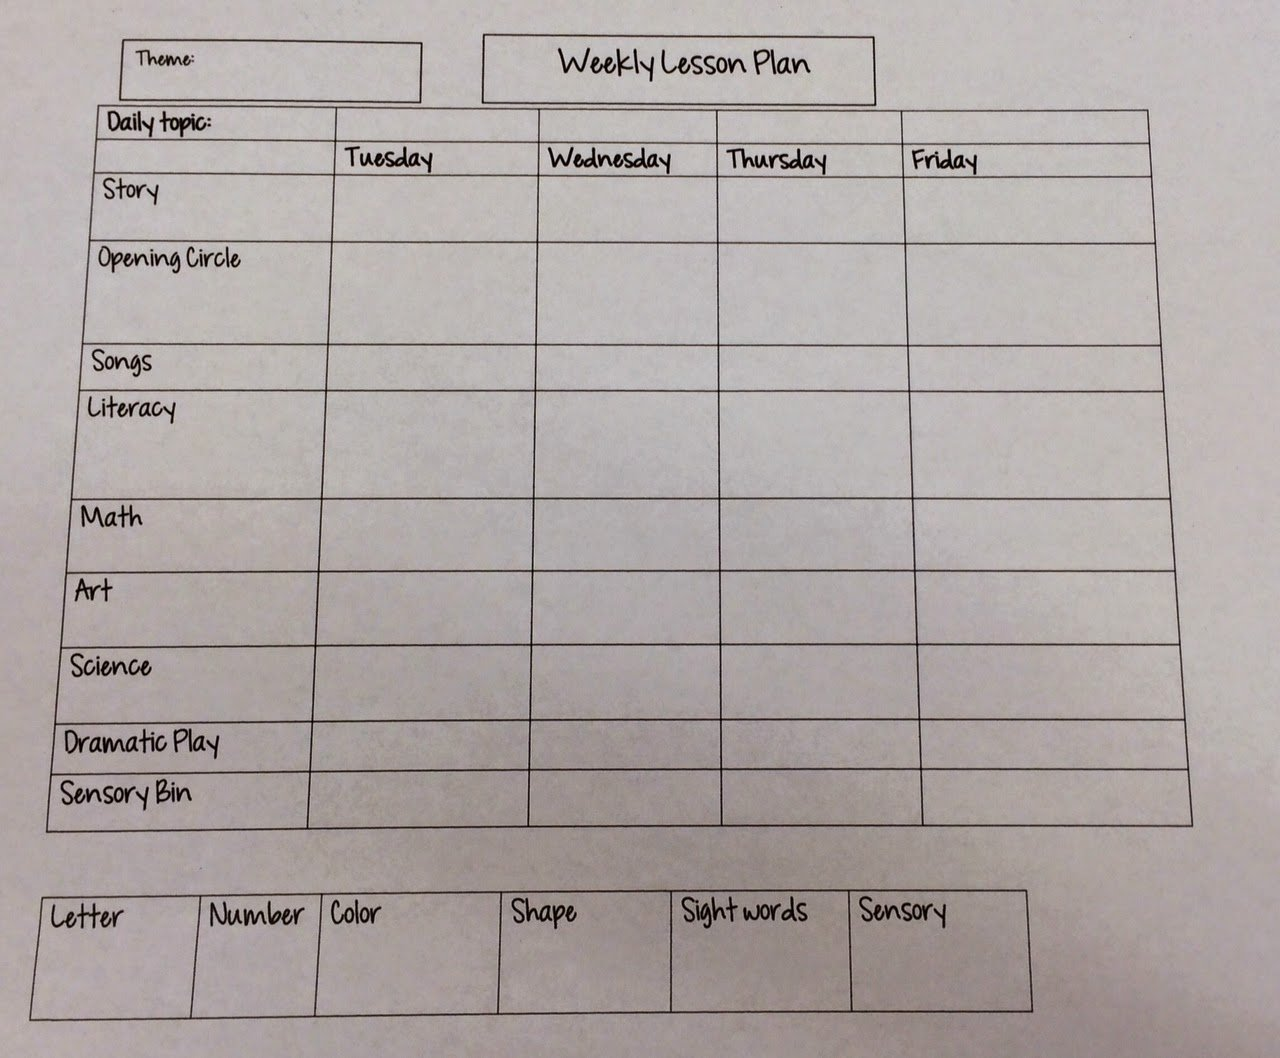 Weekly Lesson Plan Template Fresh Miss Nicole S Preschool Weekly Lesson Plan Template